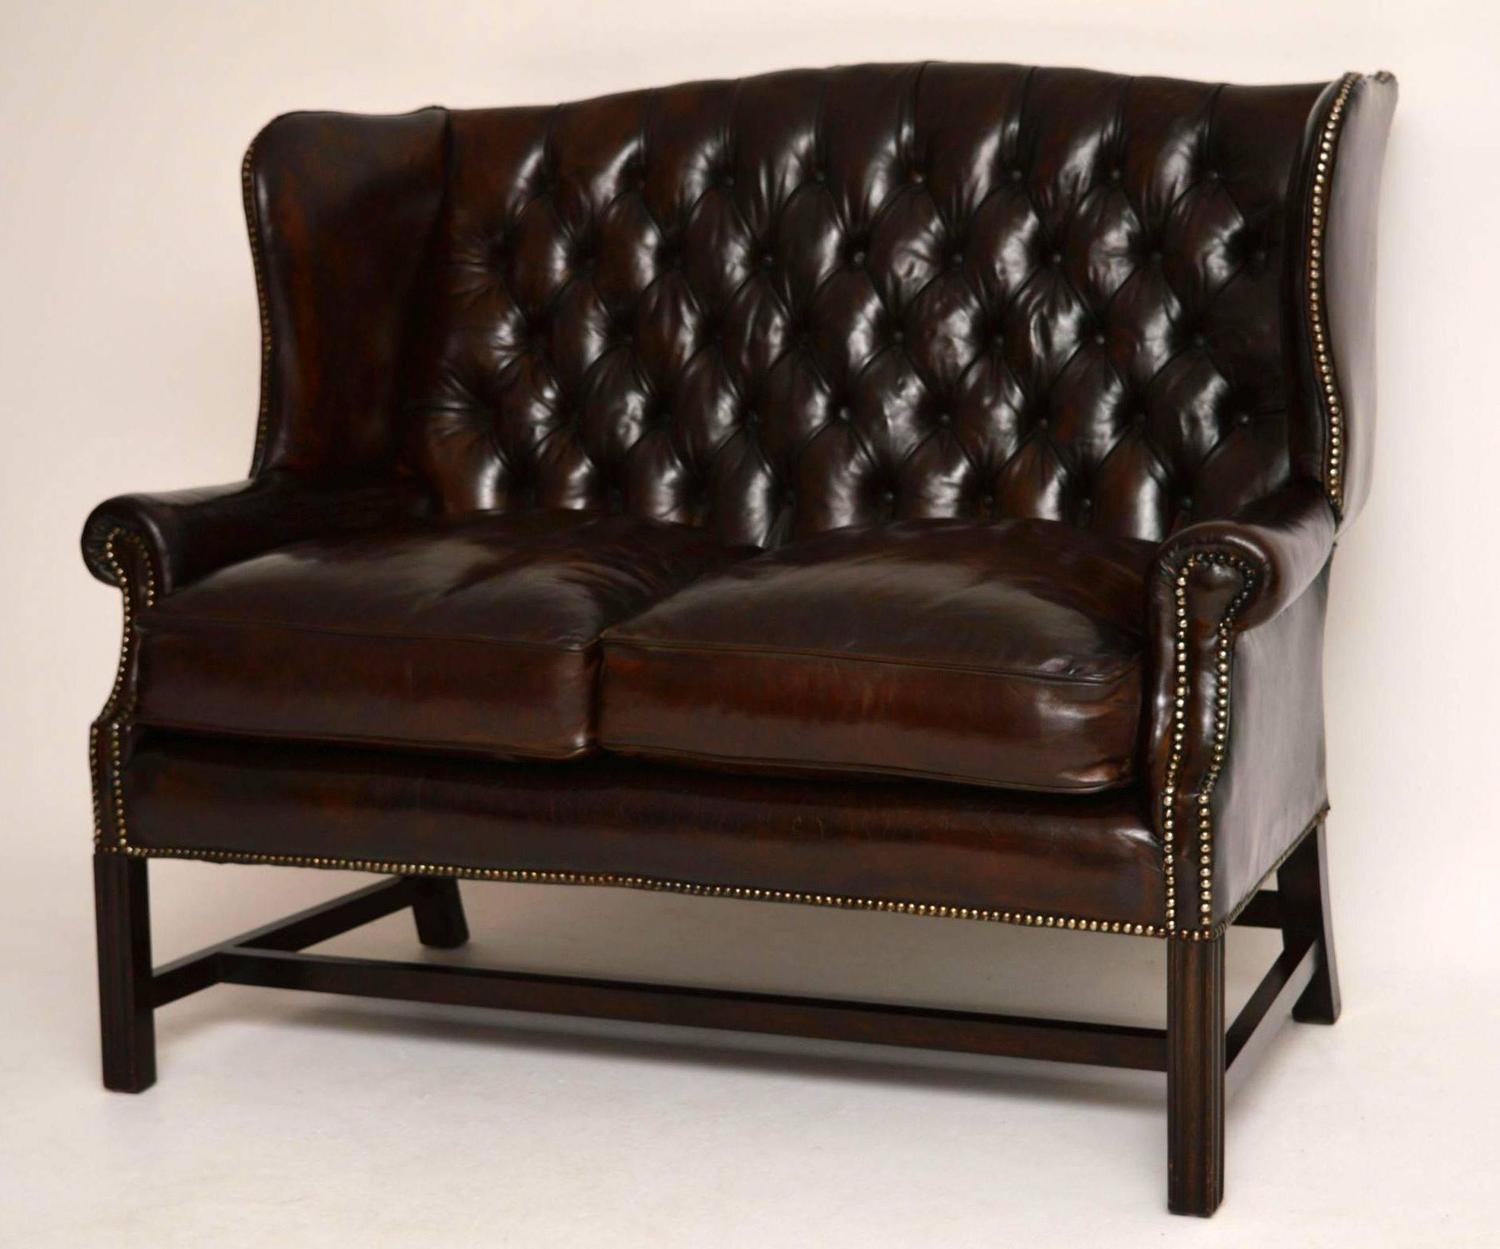 Antique deep buttoned leather wing back sofa for sale at for Deep sofas for sale